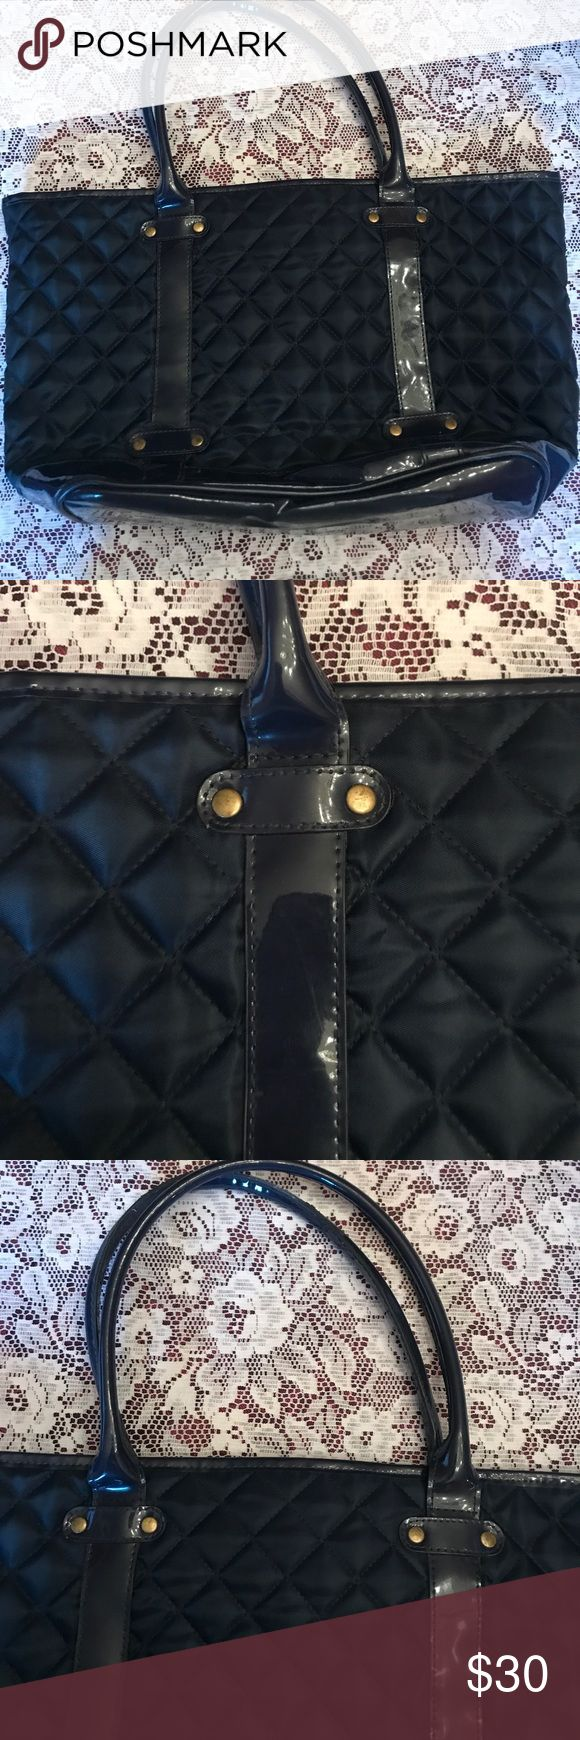 Navy Blue Gap Tote Polyester Material and Blue Patent Leather. Gap Tote. Perfect Condition! Never used! Make an offer!!!! 😊✨💕✨💕 GAP Bags Totes